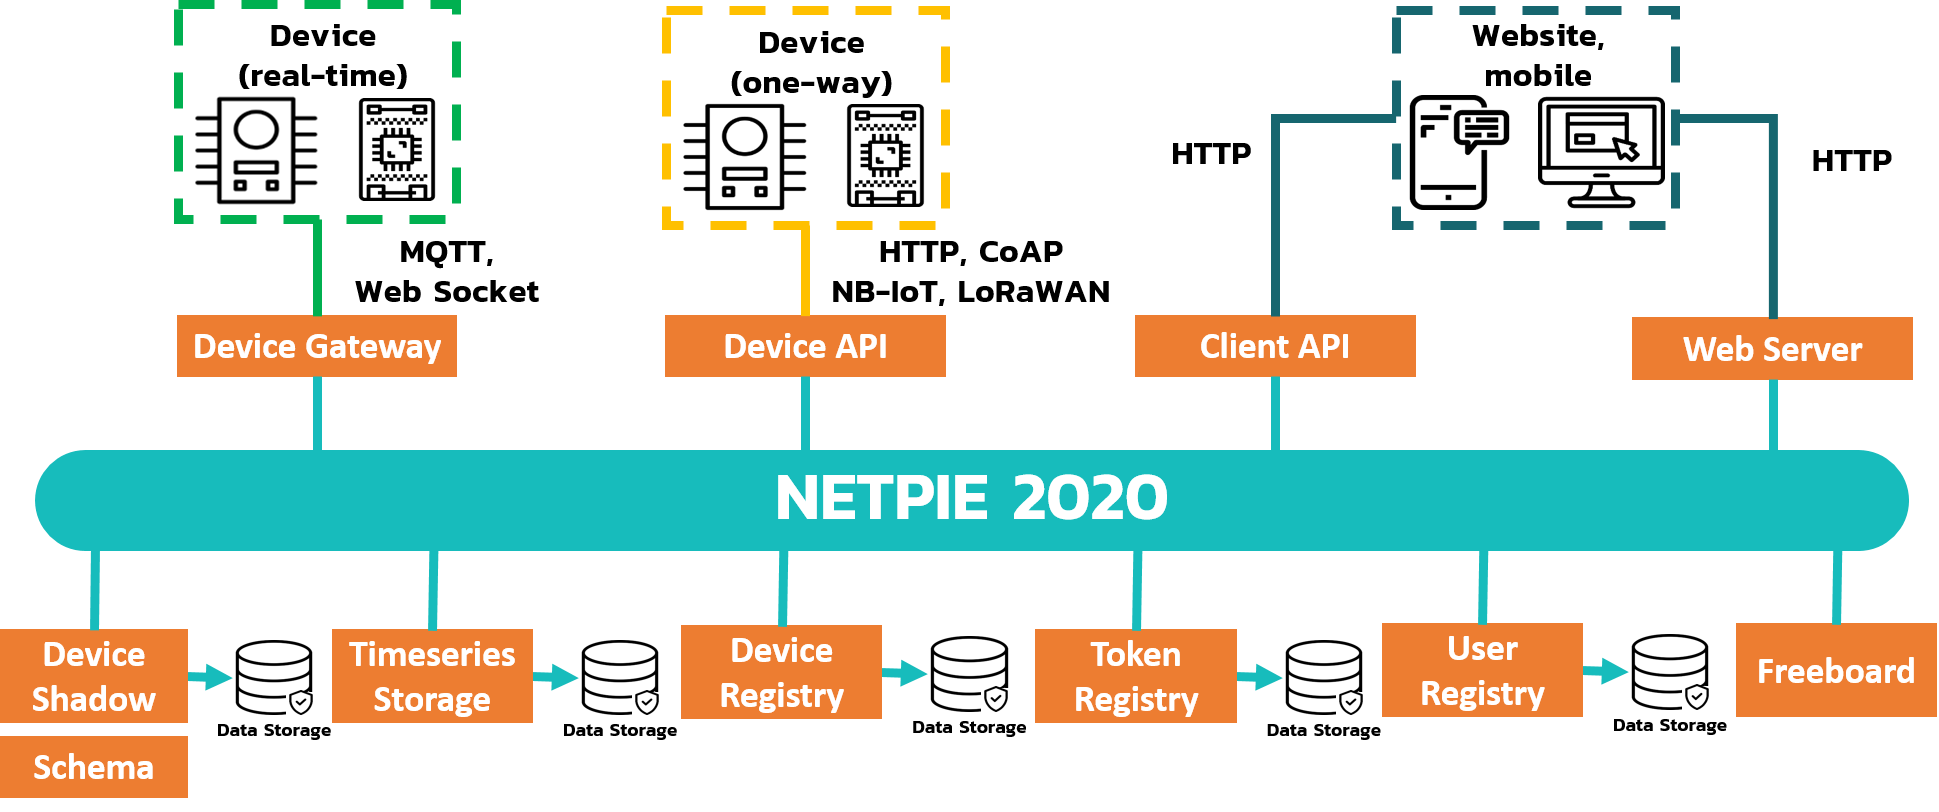 _images/netpie2020_Architecture.png